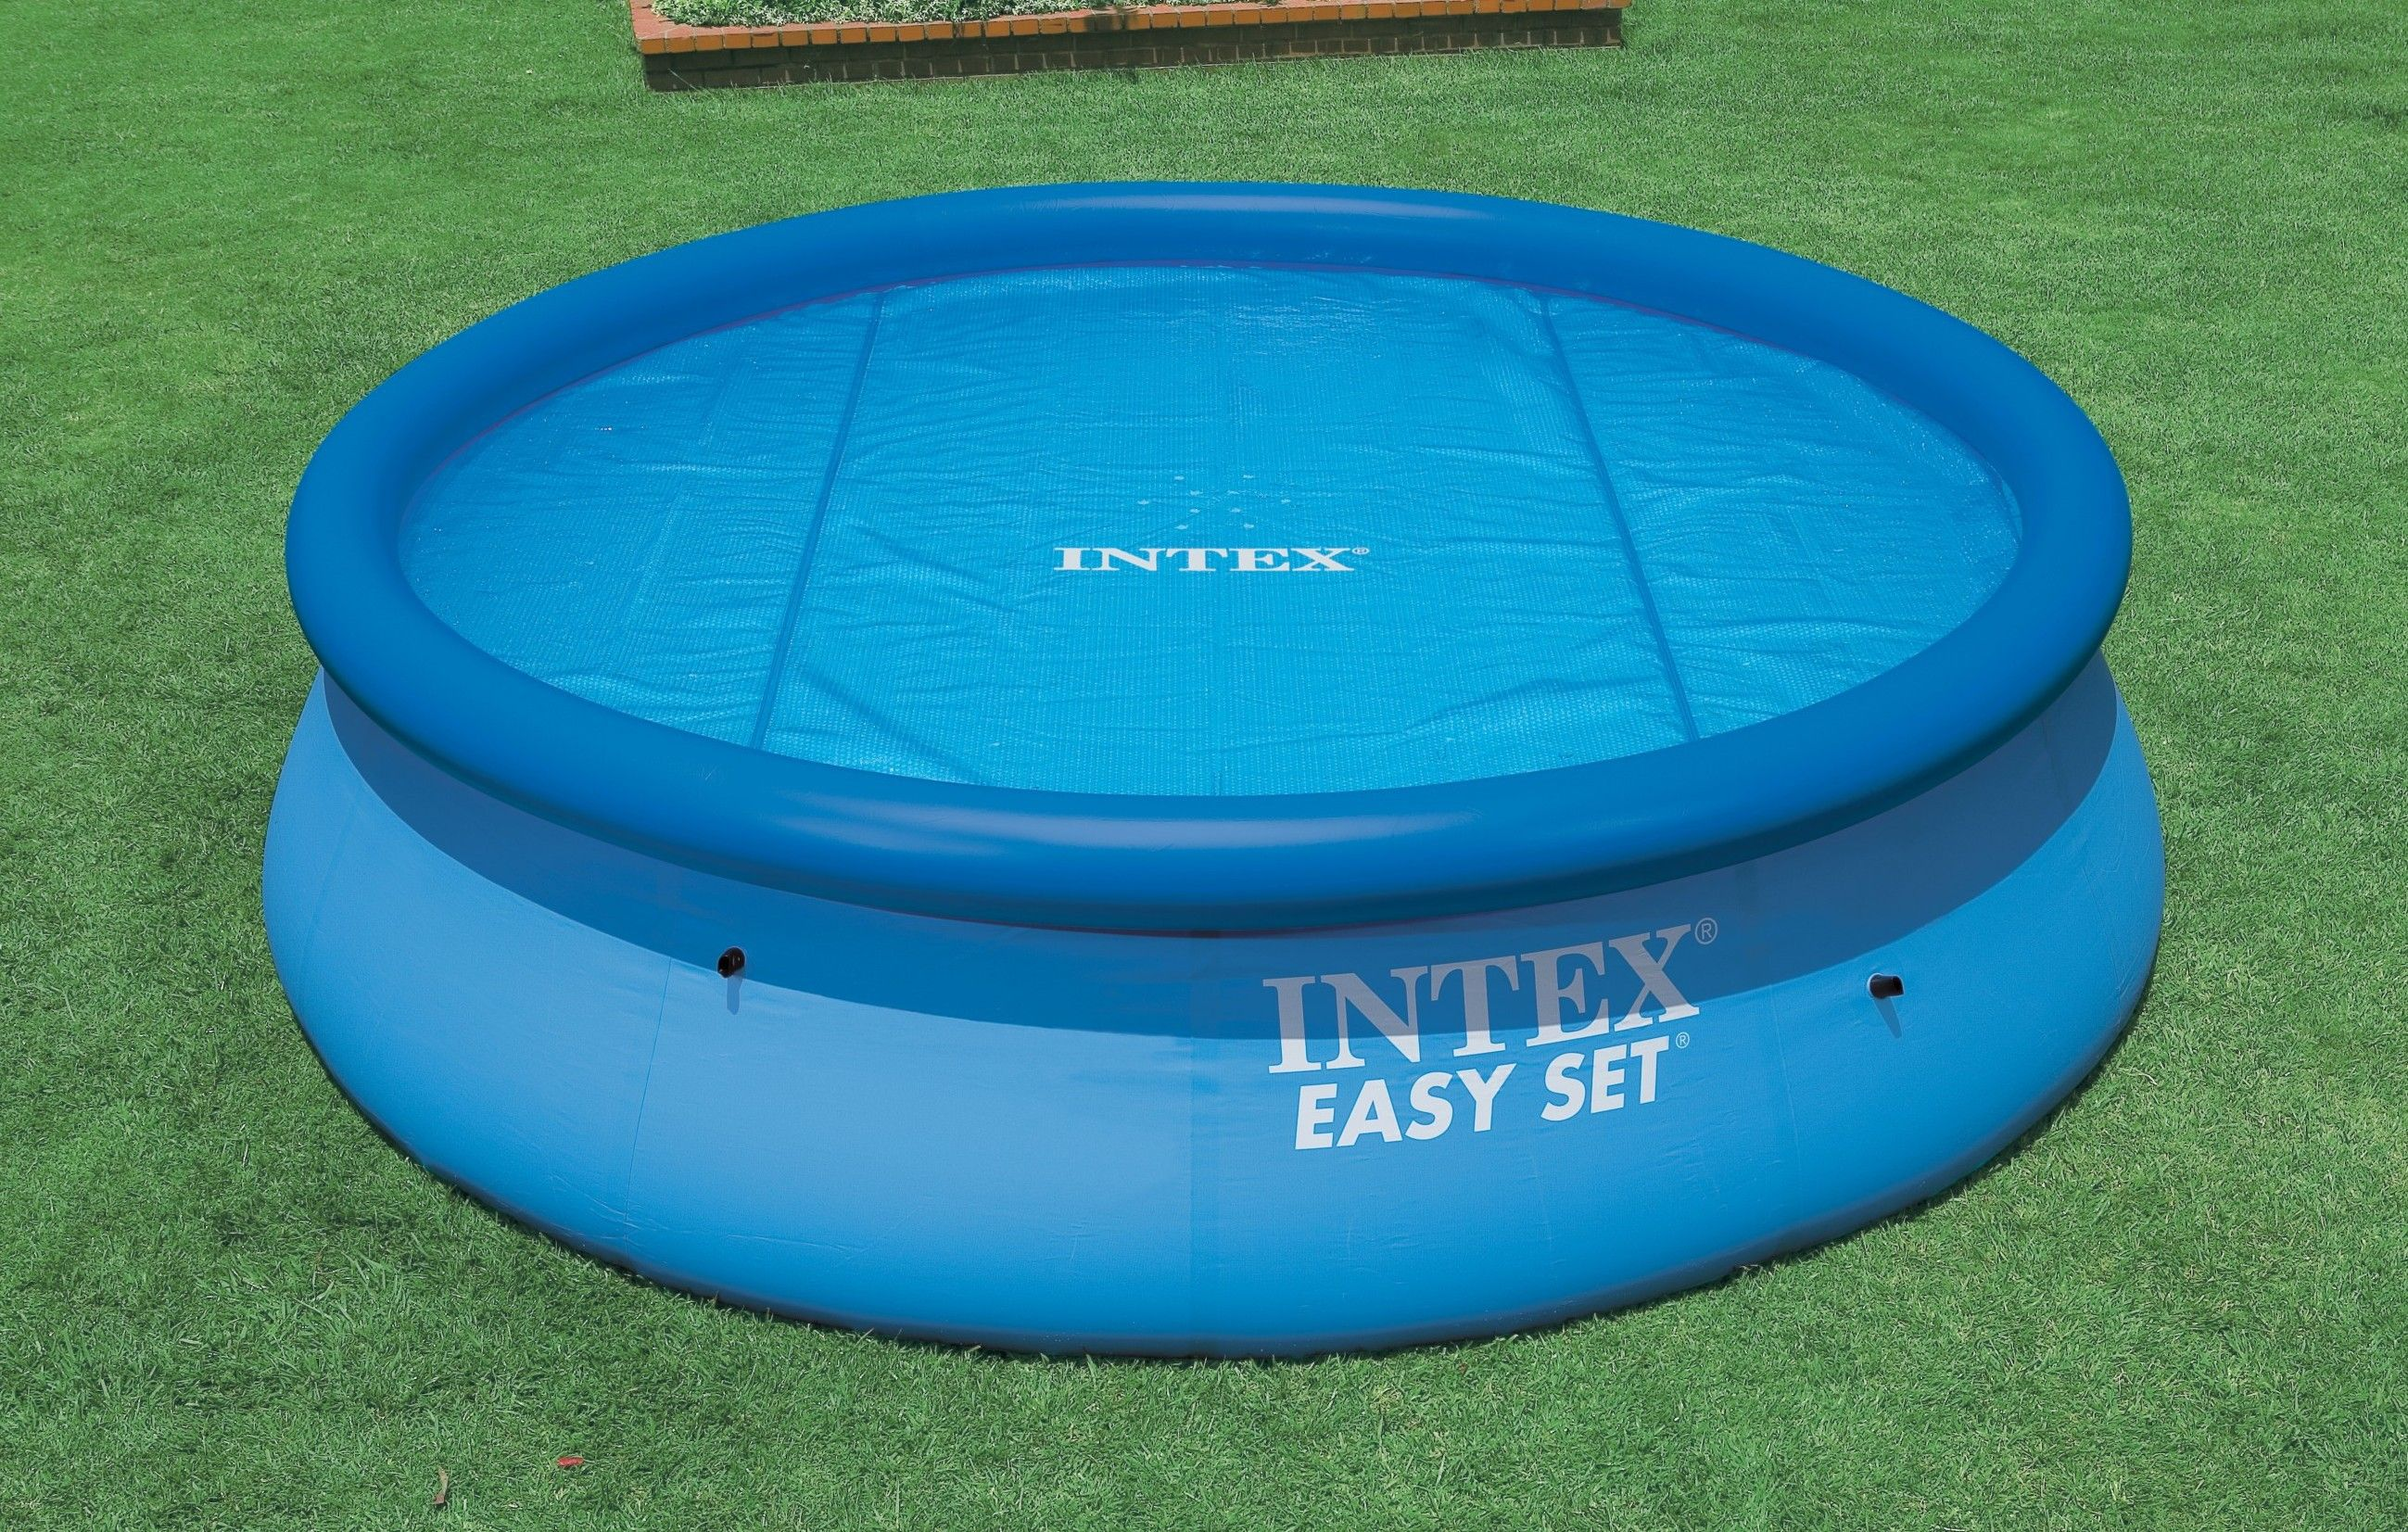 Pool Filterpumpe Welche Intex Pool Gnstig Kaufen Perfect Intex Pool Abdeckplane